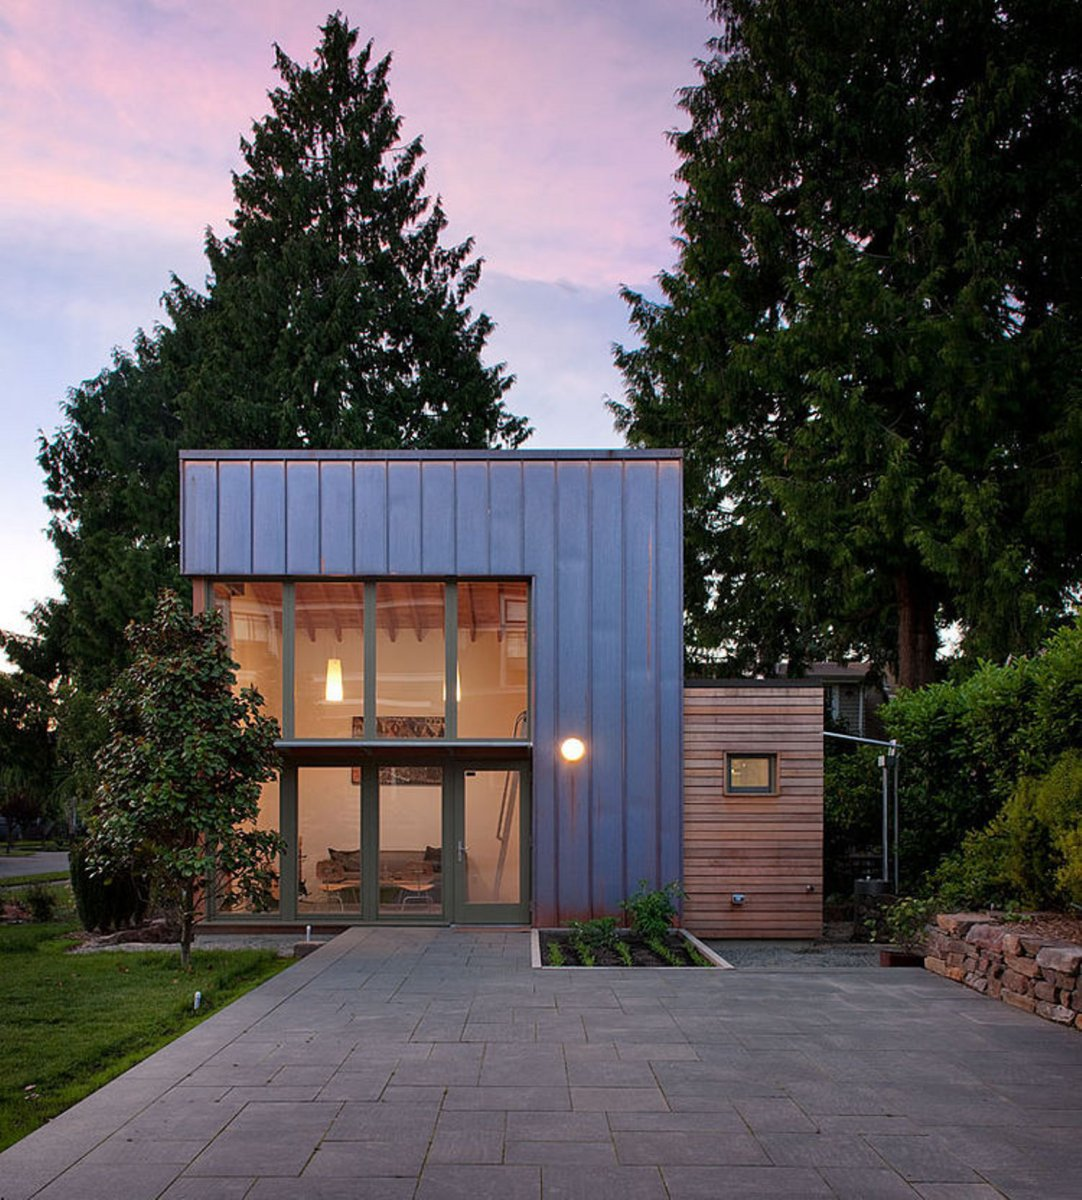 accessory dwelling units adu small house bliss